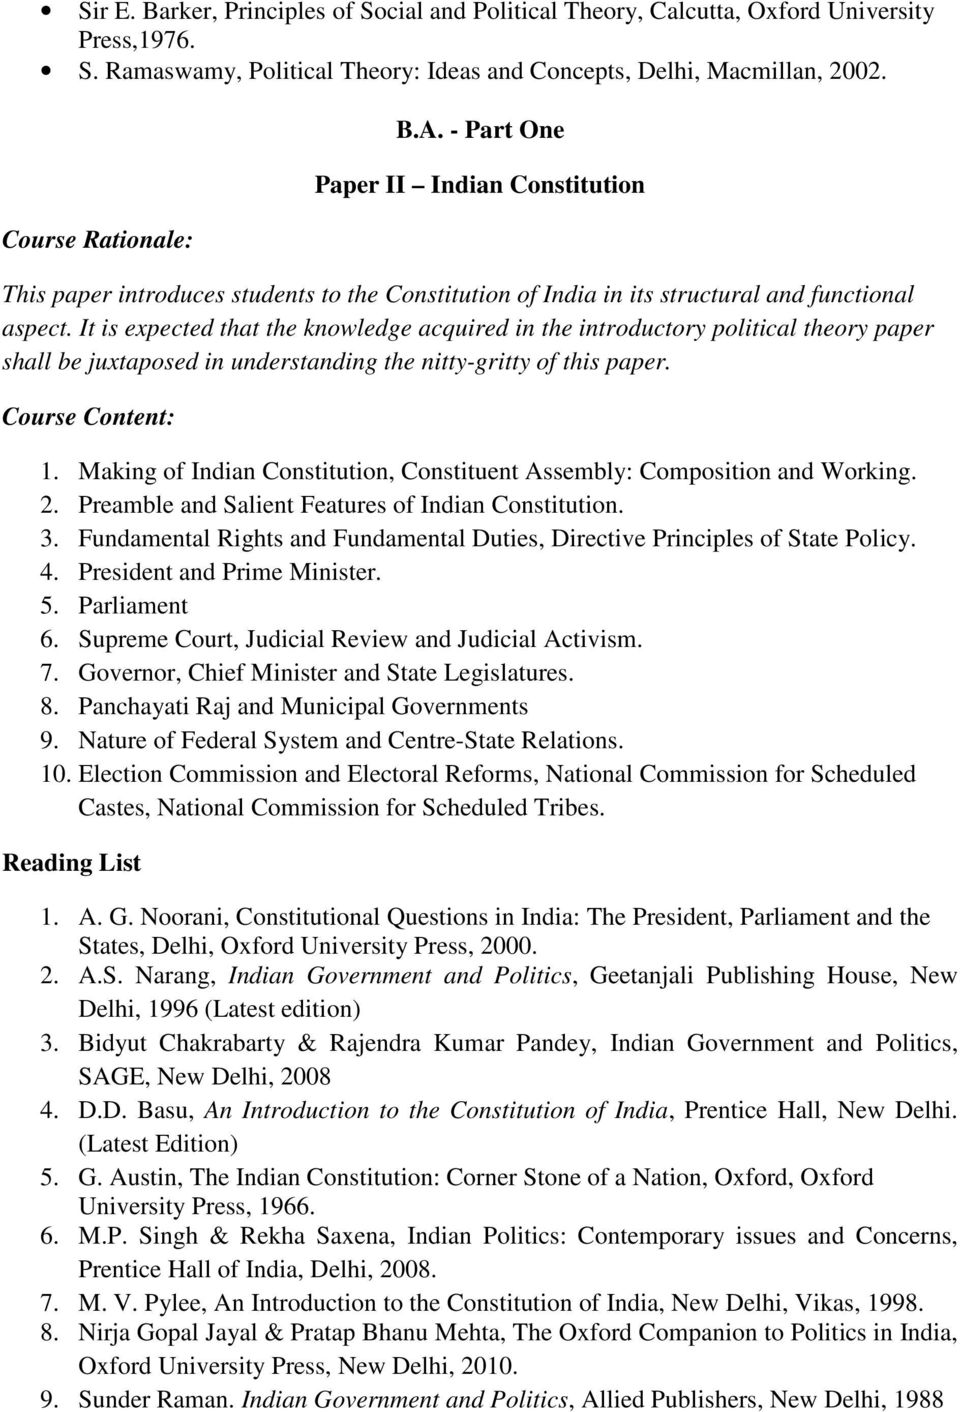 essay on preamble of n constitution 91 121 113 106 essay on preamble of the constitution essays